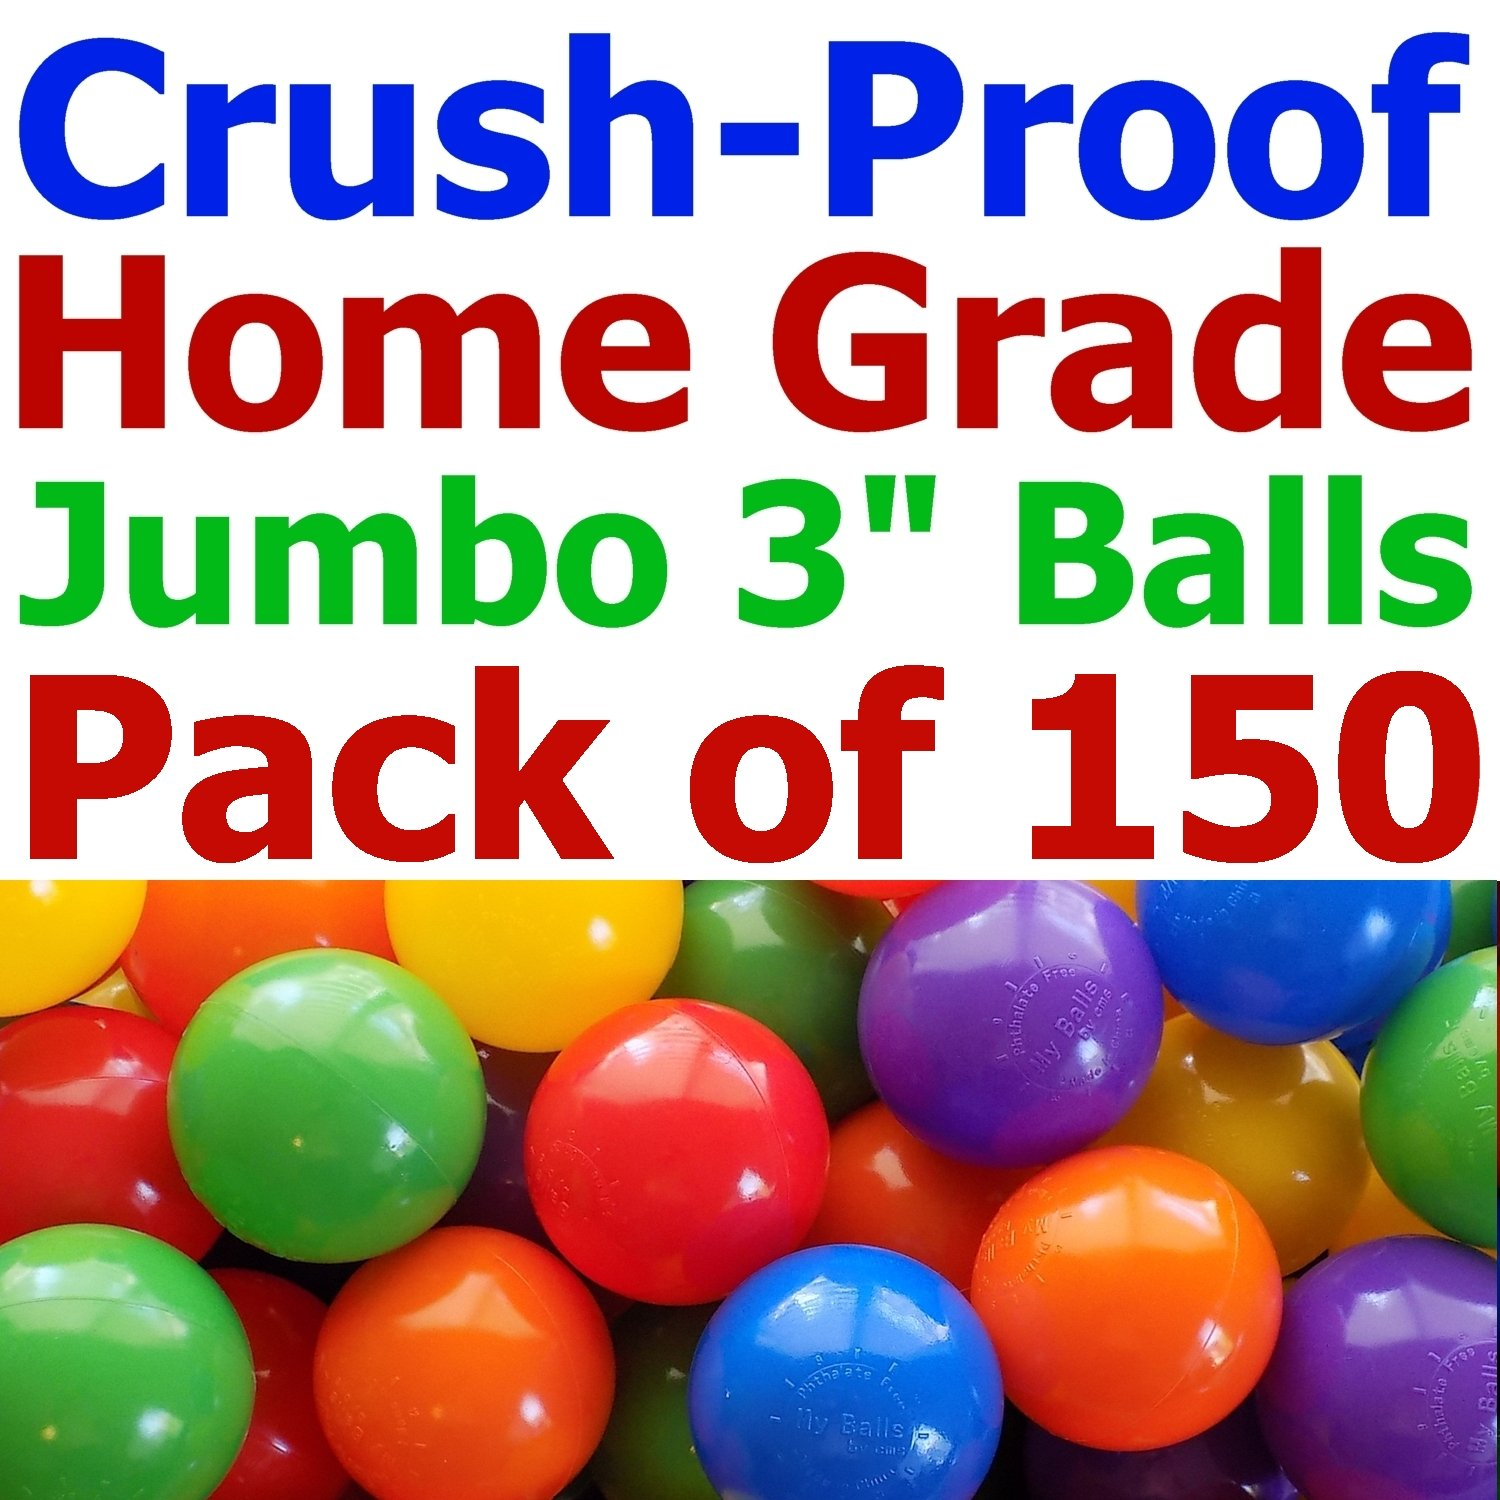 150 pcs Large 3.1'' Crush-Proof non-PVC Phthalate Free Plastic Ball Pit Balls - Air-Filled in 5 Colors - Guaranteed Crush-Proof by My Balls